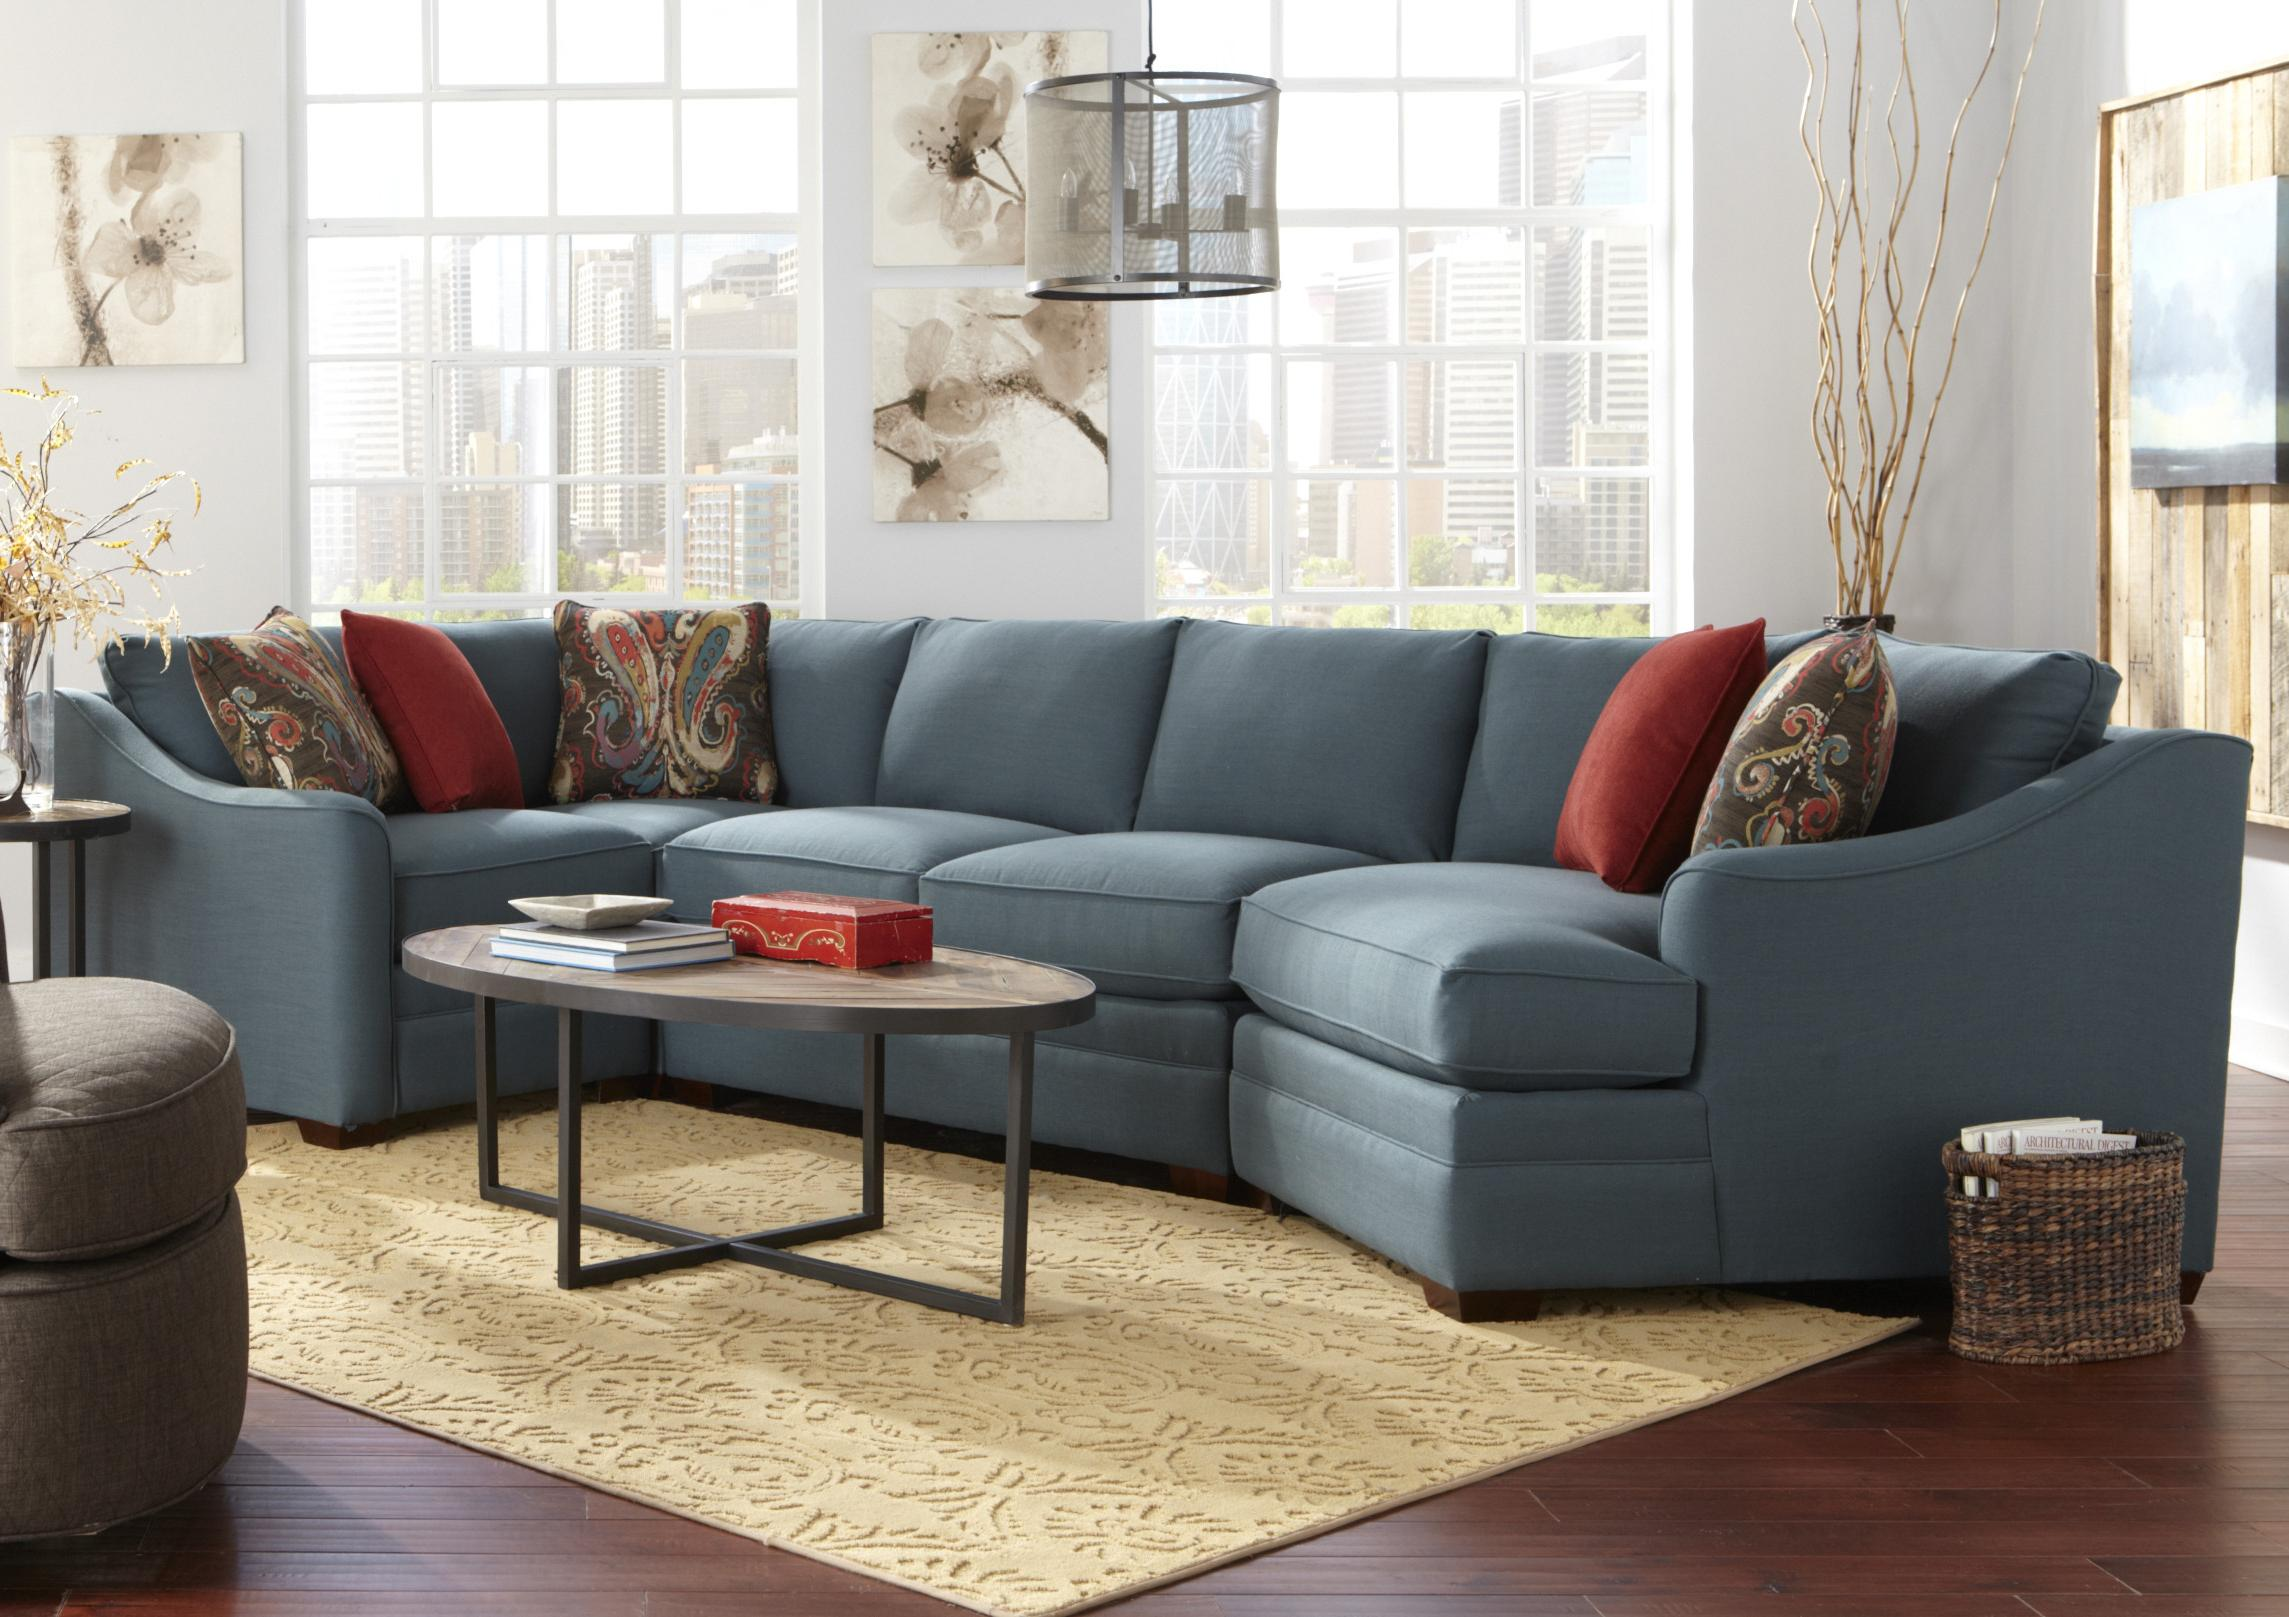 Sofa Scandinavian Jakarta Craftmaster F9 Design Options Four Piece B Customizable B